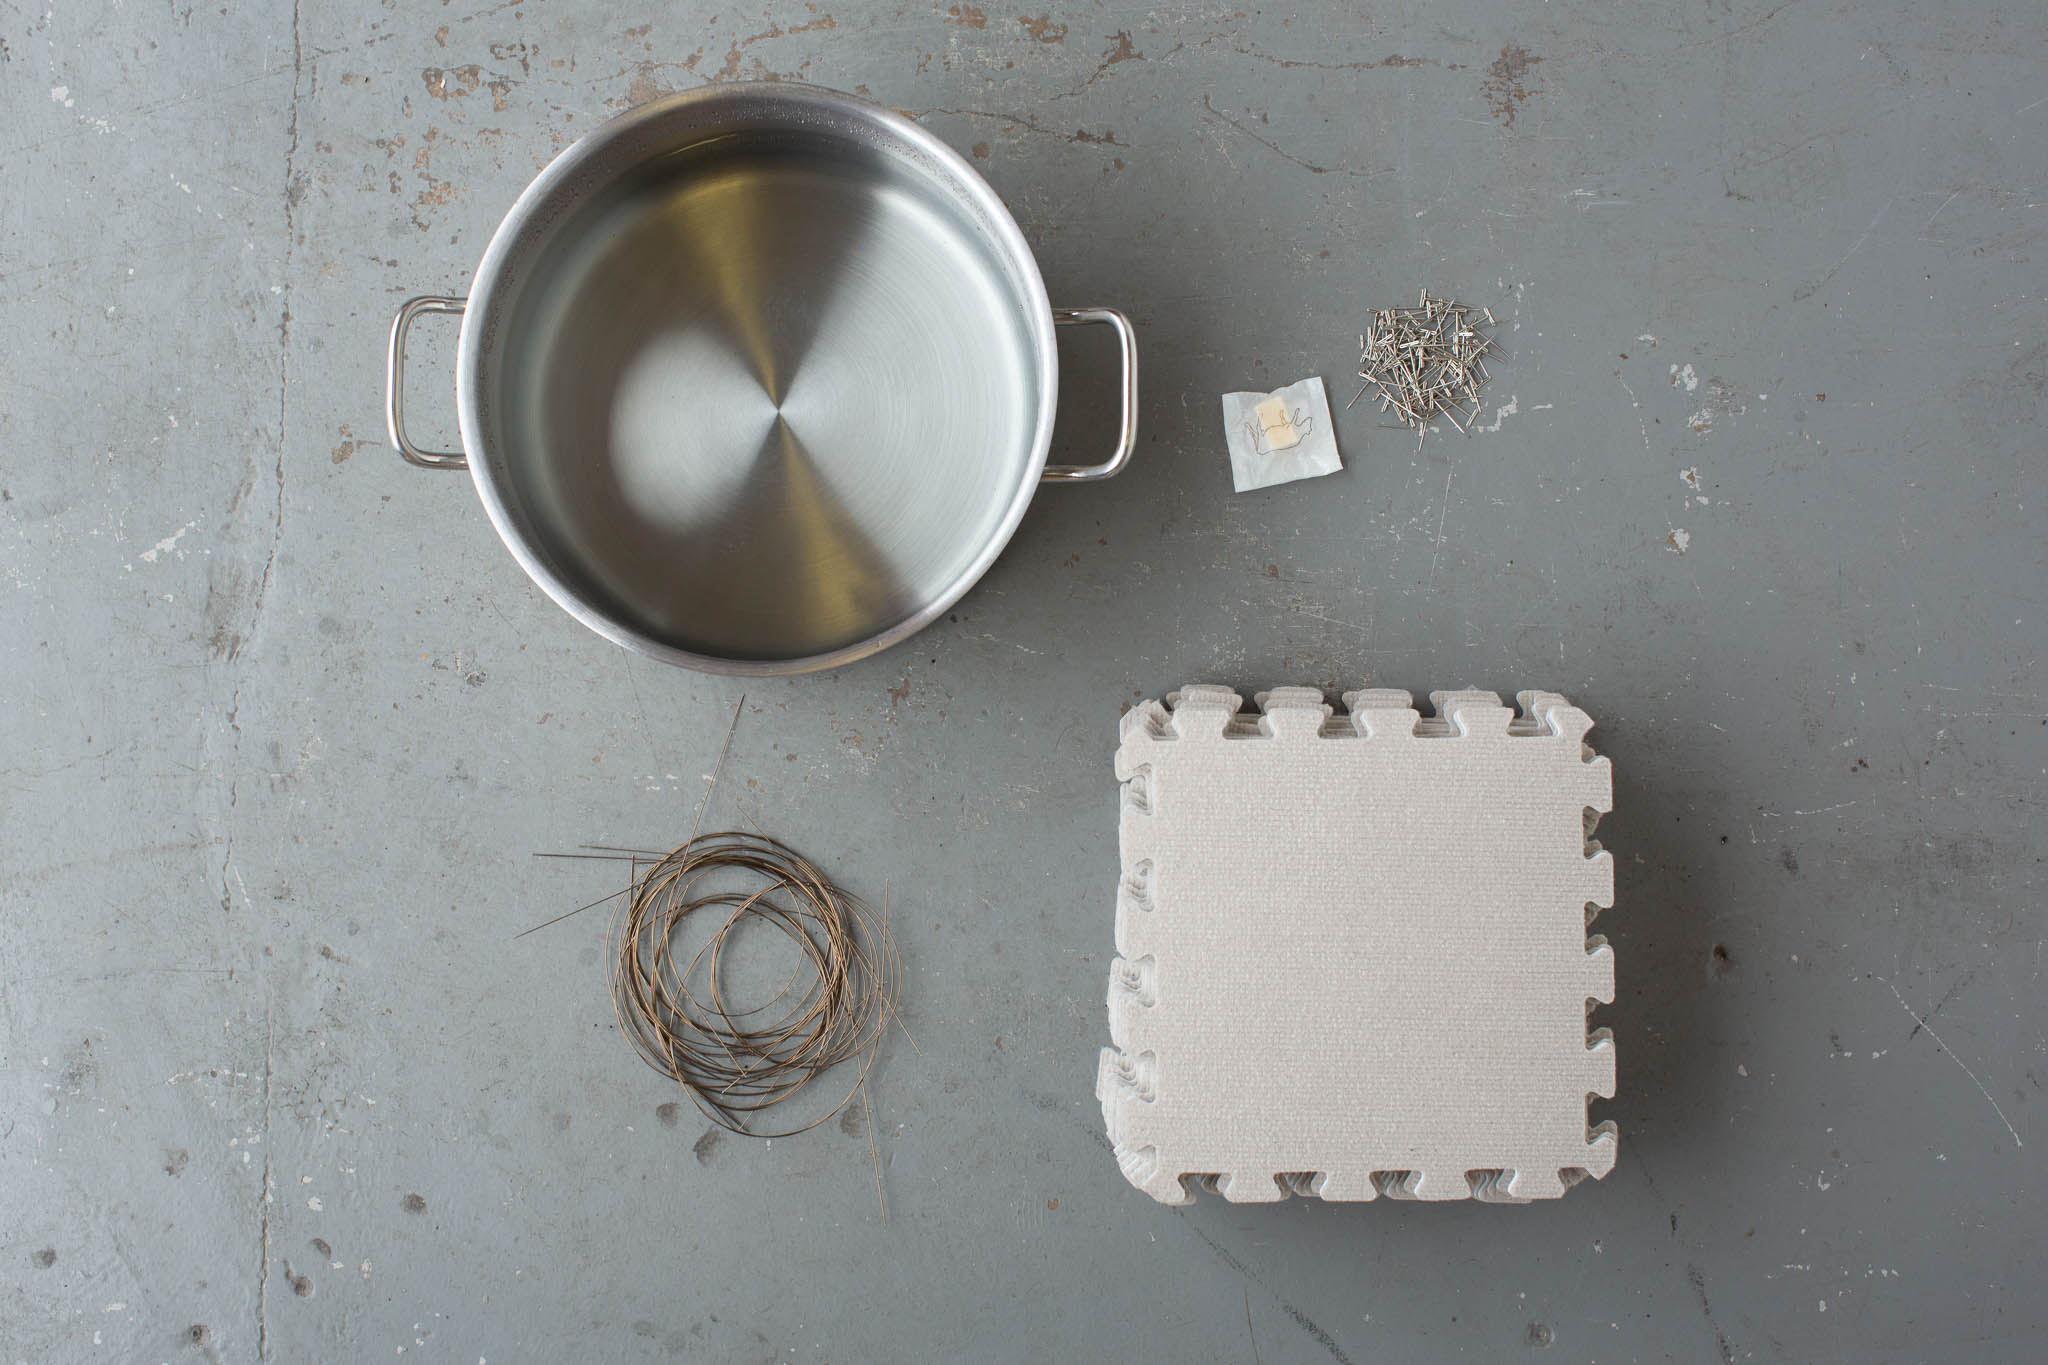 A silver metal pan, a stack of blocking mats and a some blocking wires curled up together are arranged on a flat grey surface.